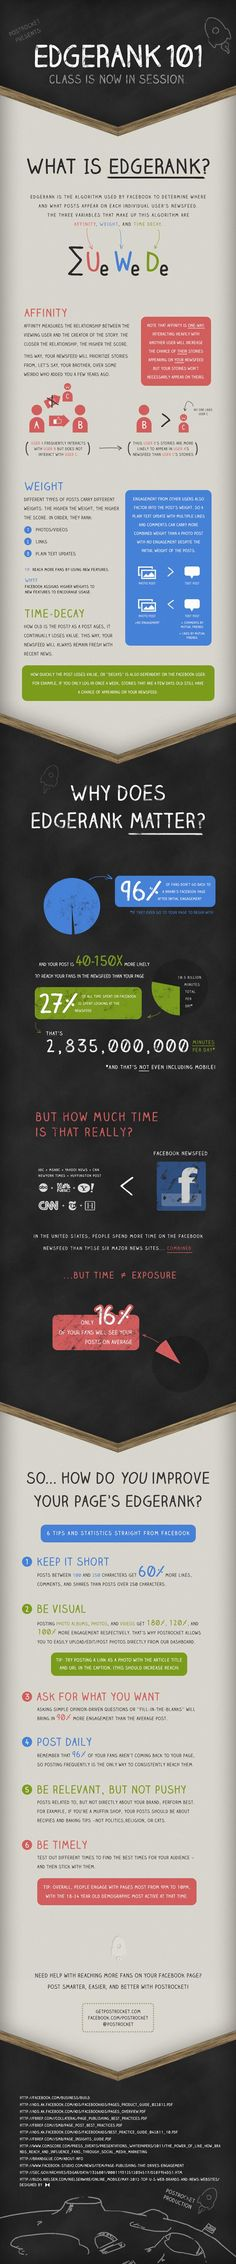 #Facebook EdgeRank Explained #infographic --> http://louisem.com/3311/facebook-edgerank-explained